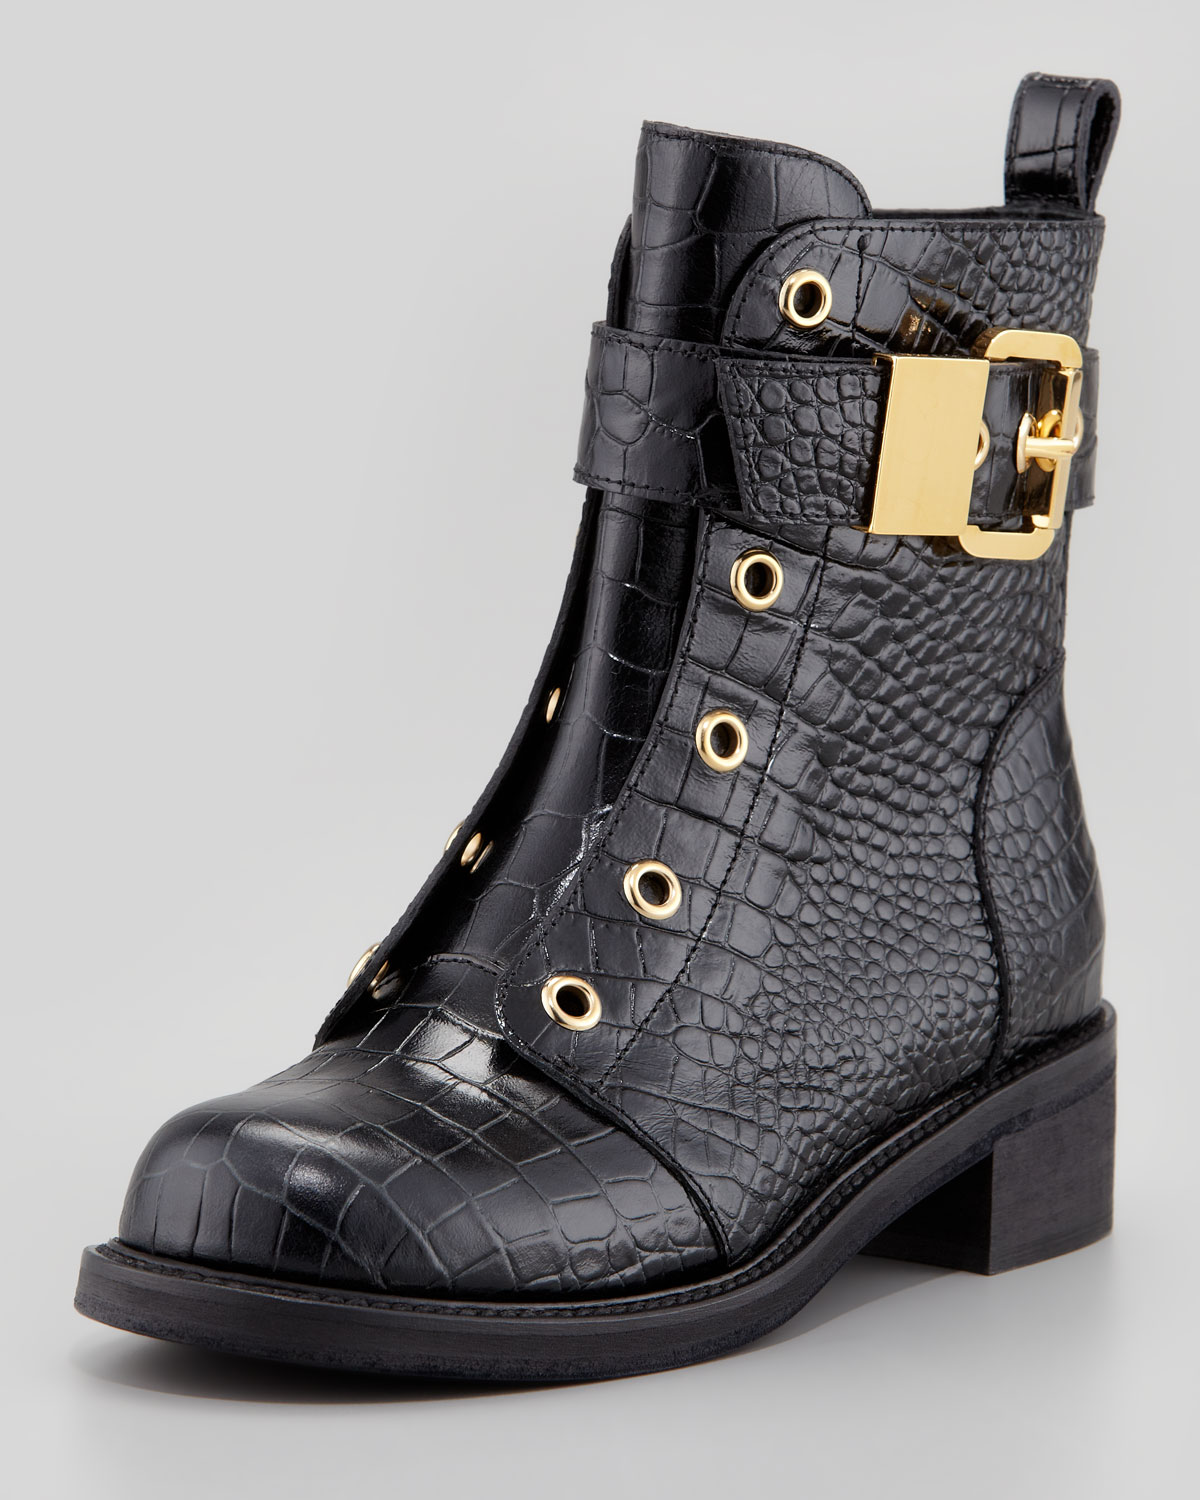 ef4b9082db319 Gallery. Previously sold at: Neiman Marcus · Women's Biker Boots Women's  Combat Boots